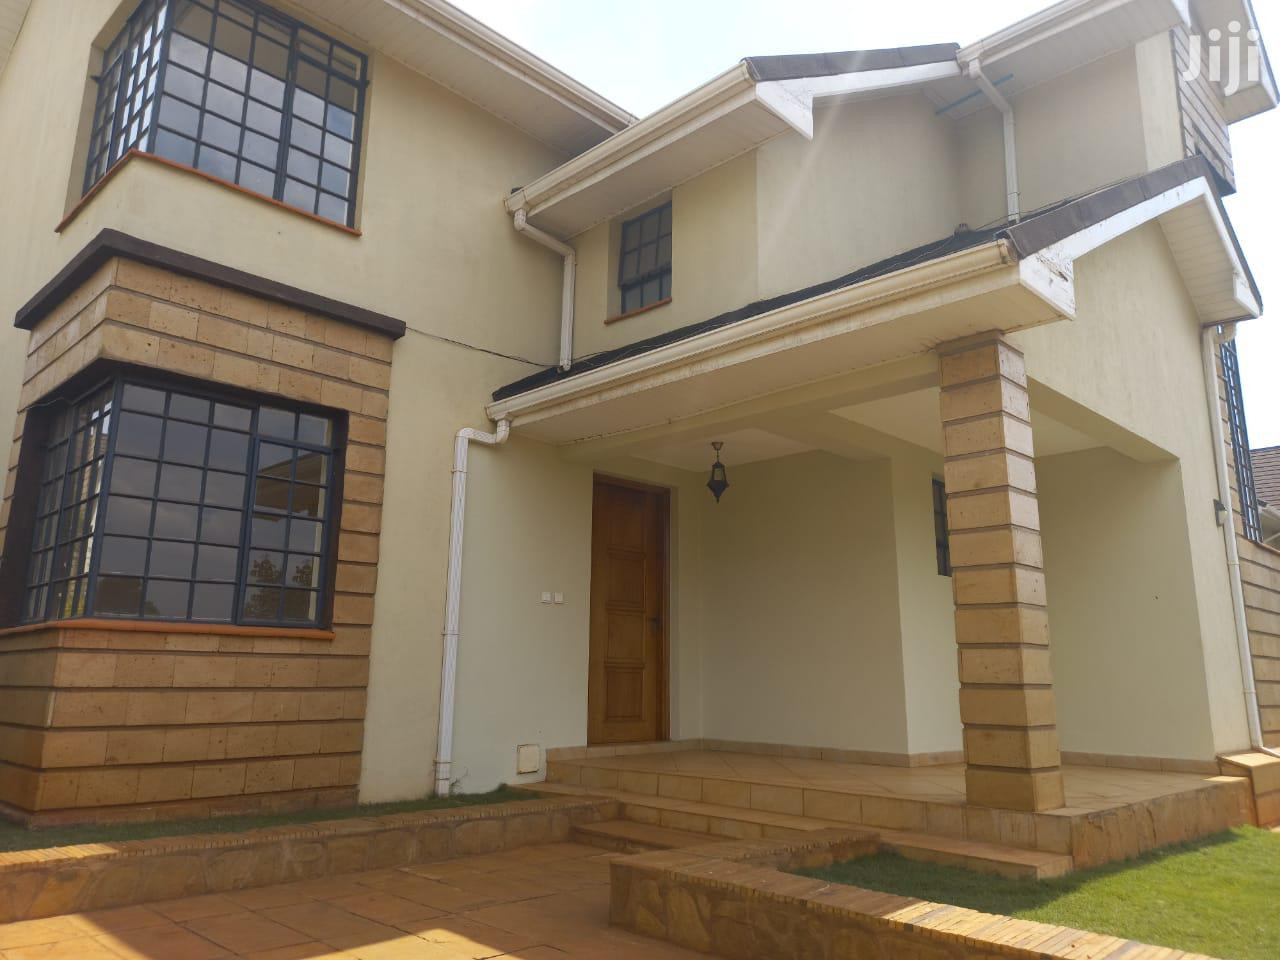 4 Bedroom All Ensuite House at Kitisuru in a Gated Community